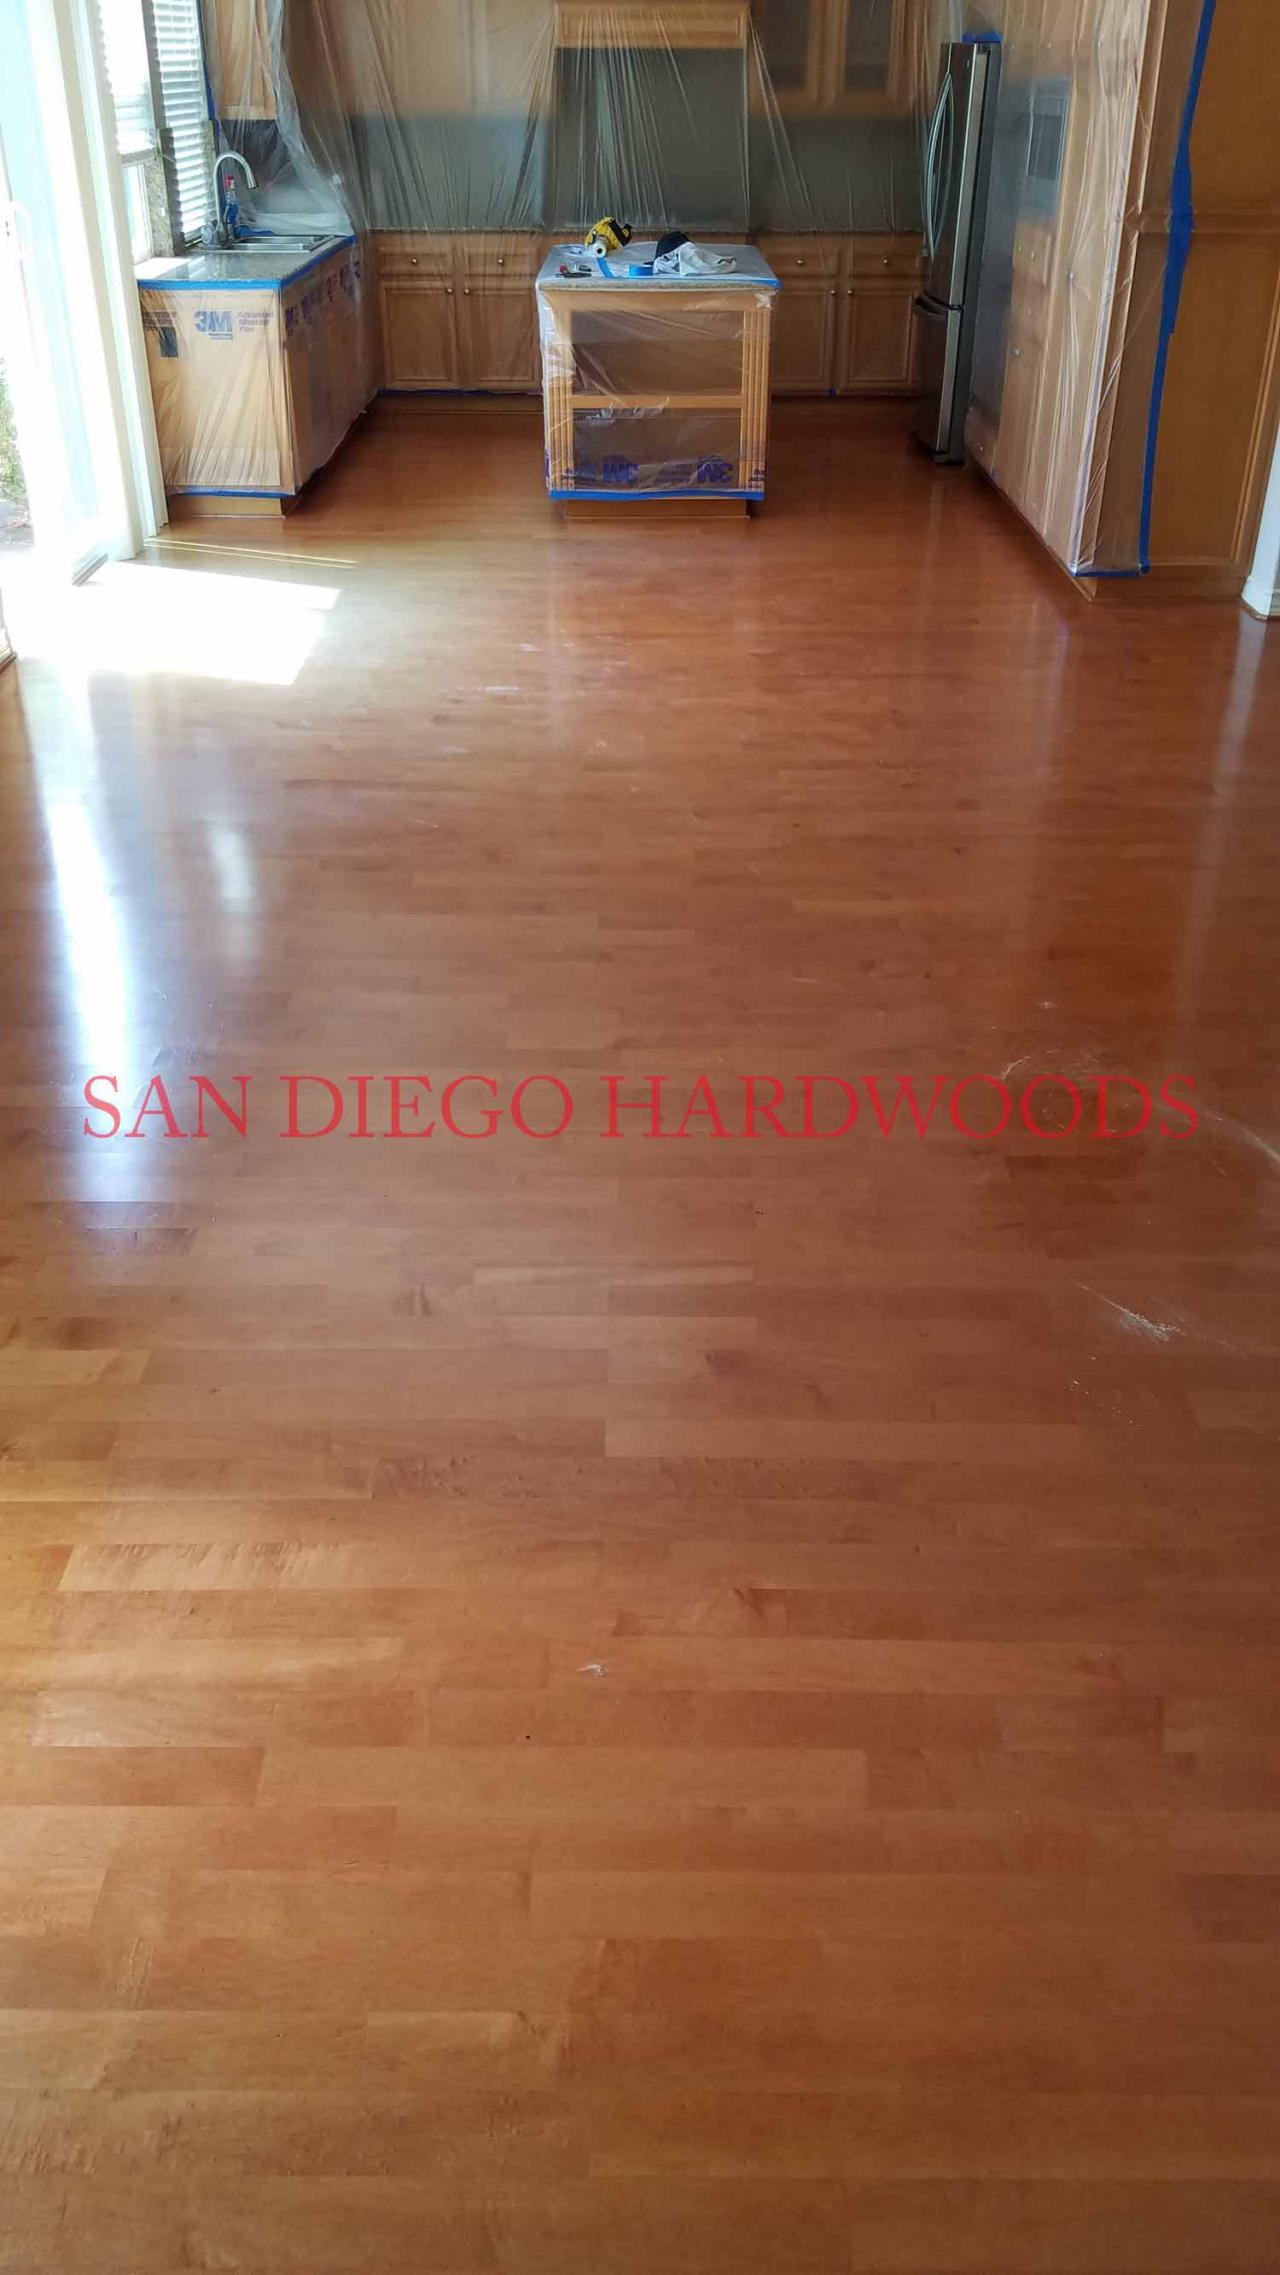 SAN DIEGO HARDWOOD FLOOR RESTORATION 858 699 0072 LICENSED